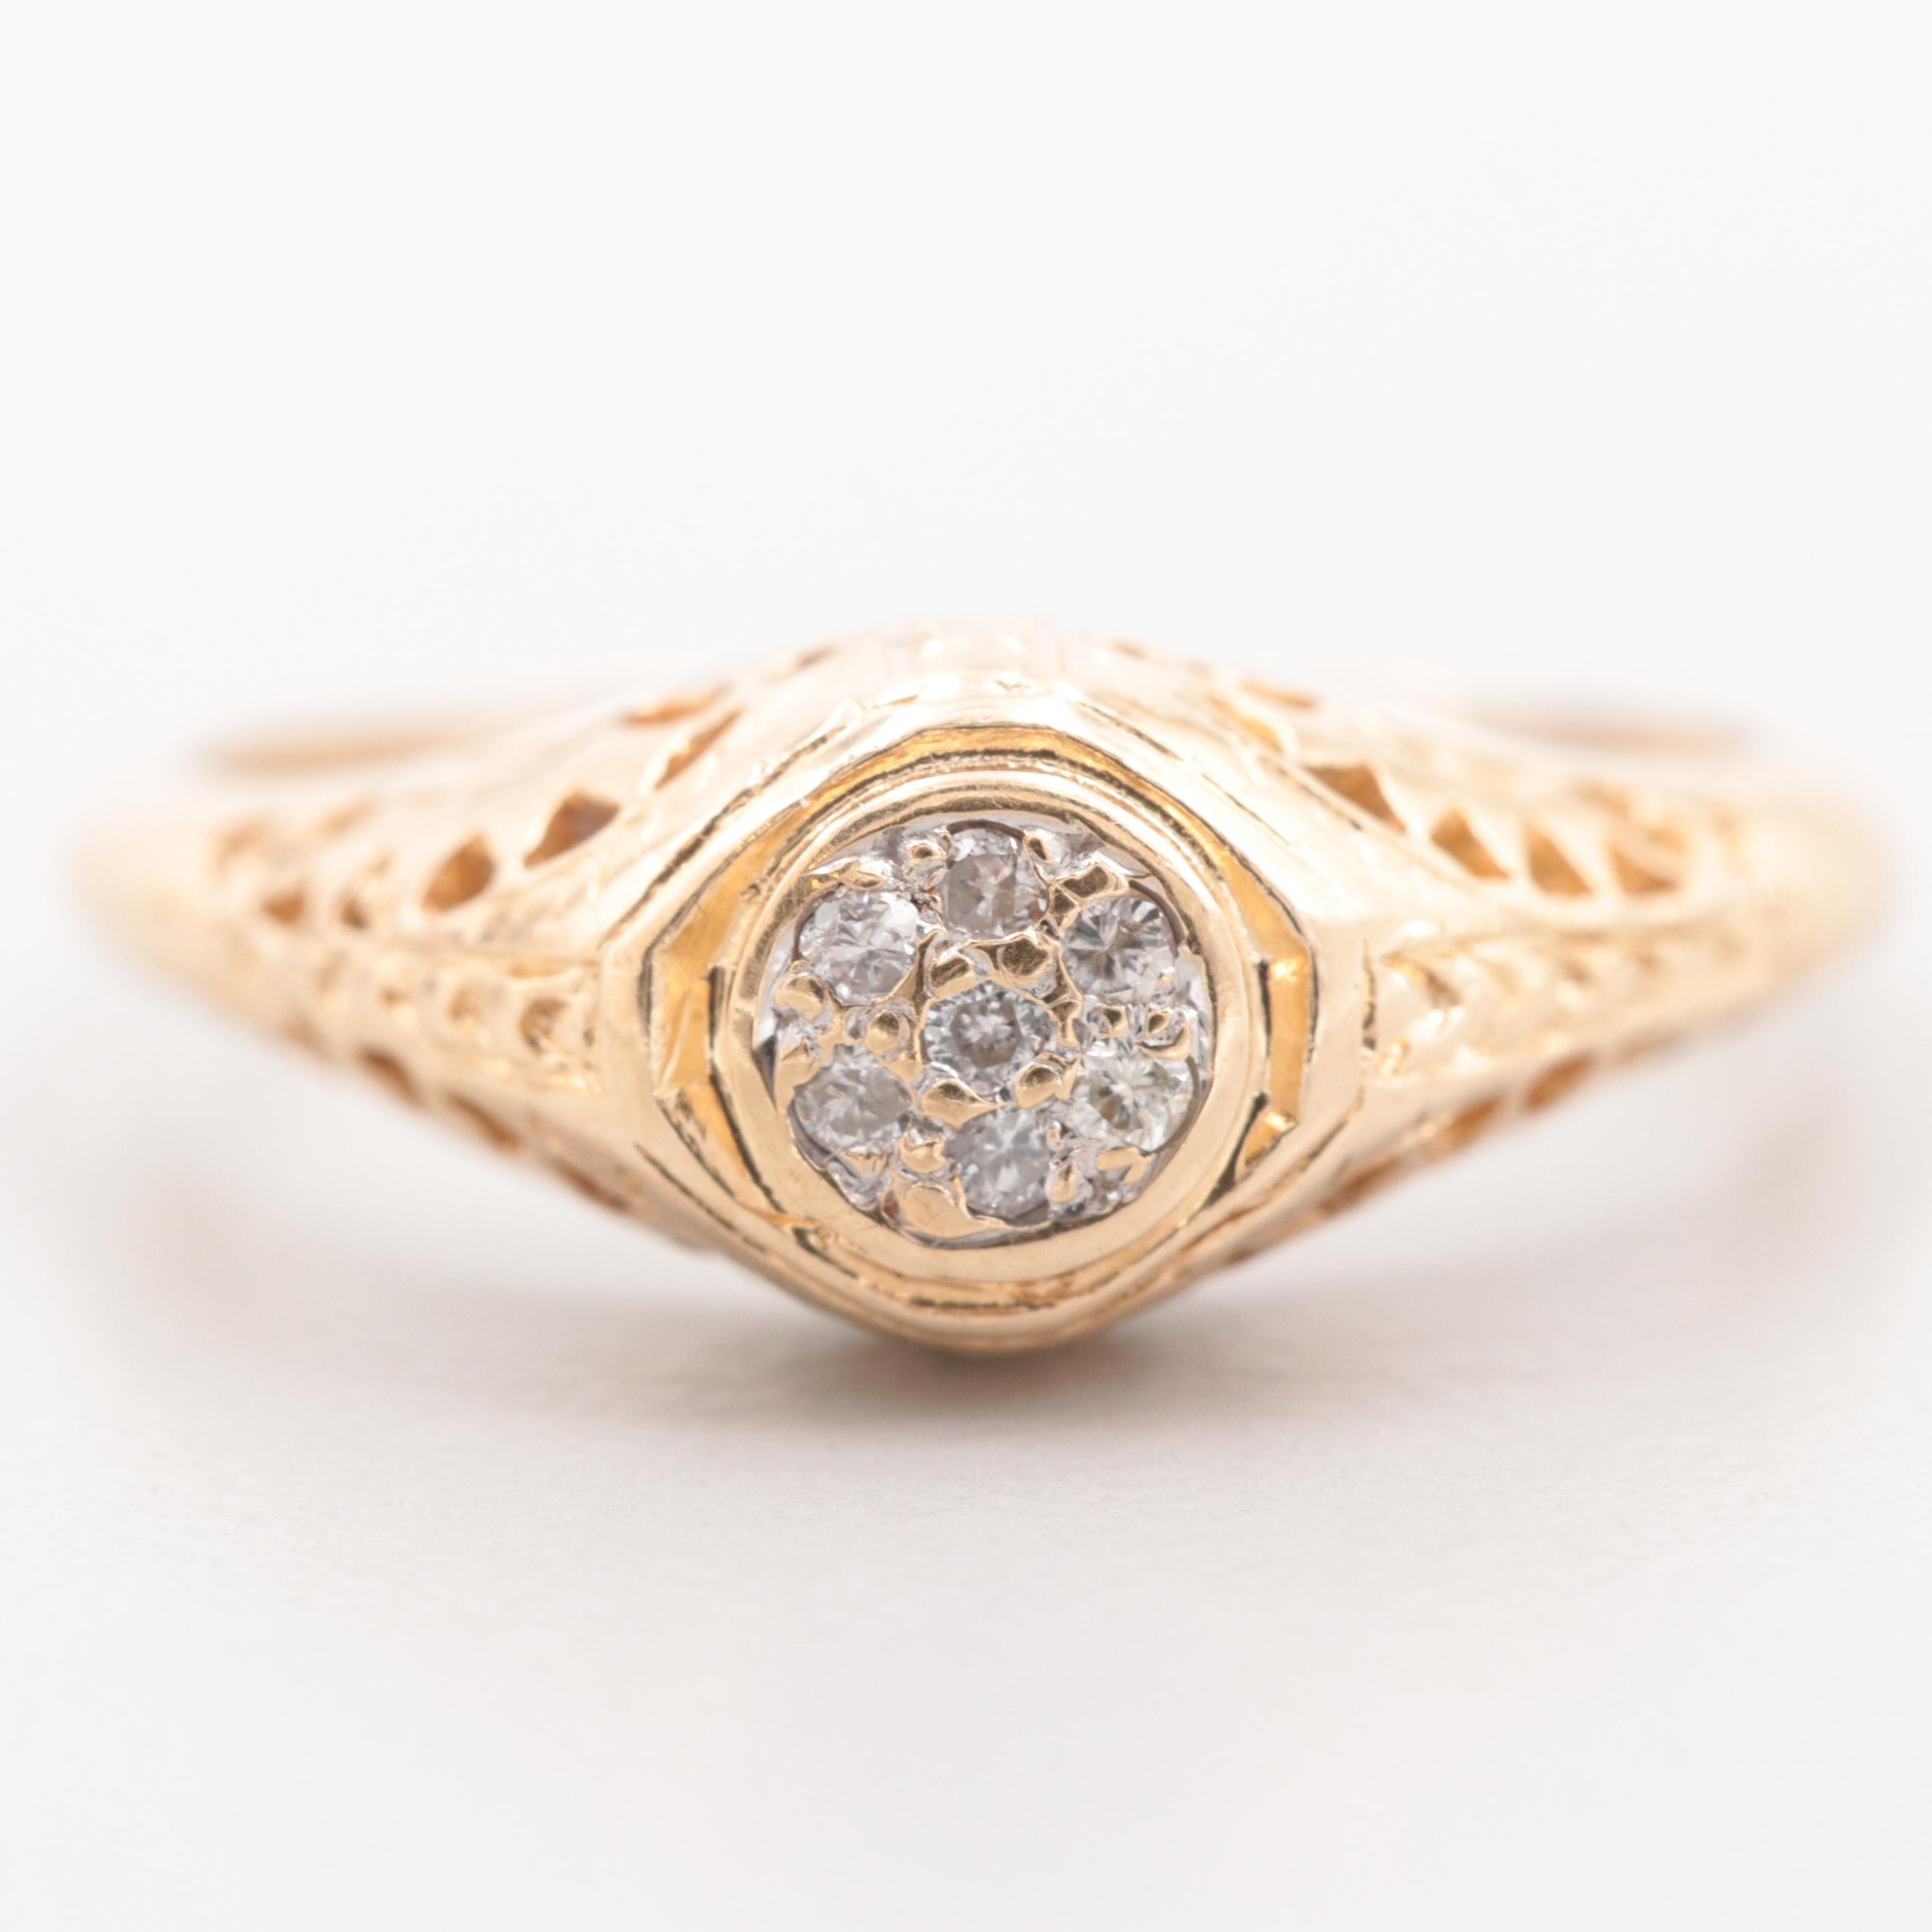 Vintage 14K Yellow Gold Diamond Cluster Ring With Openwork Setting